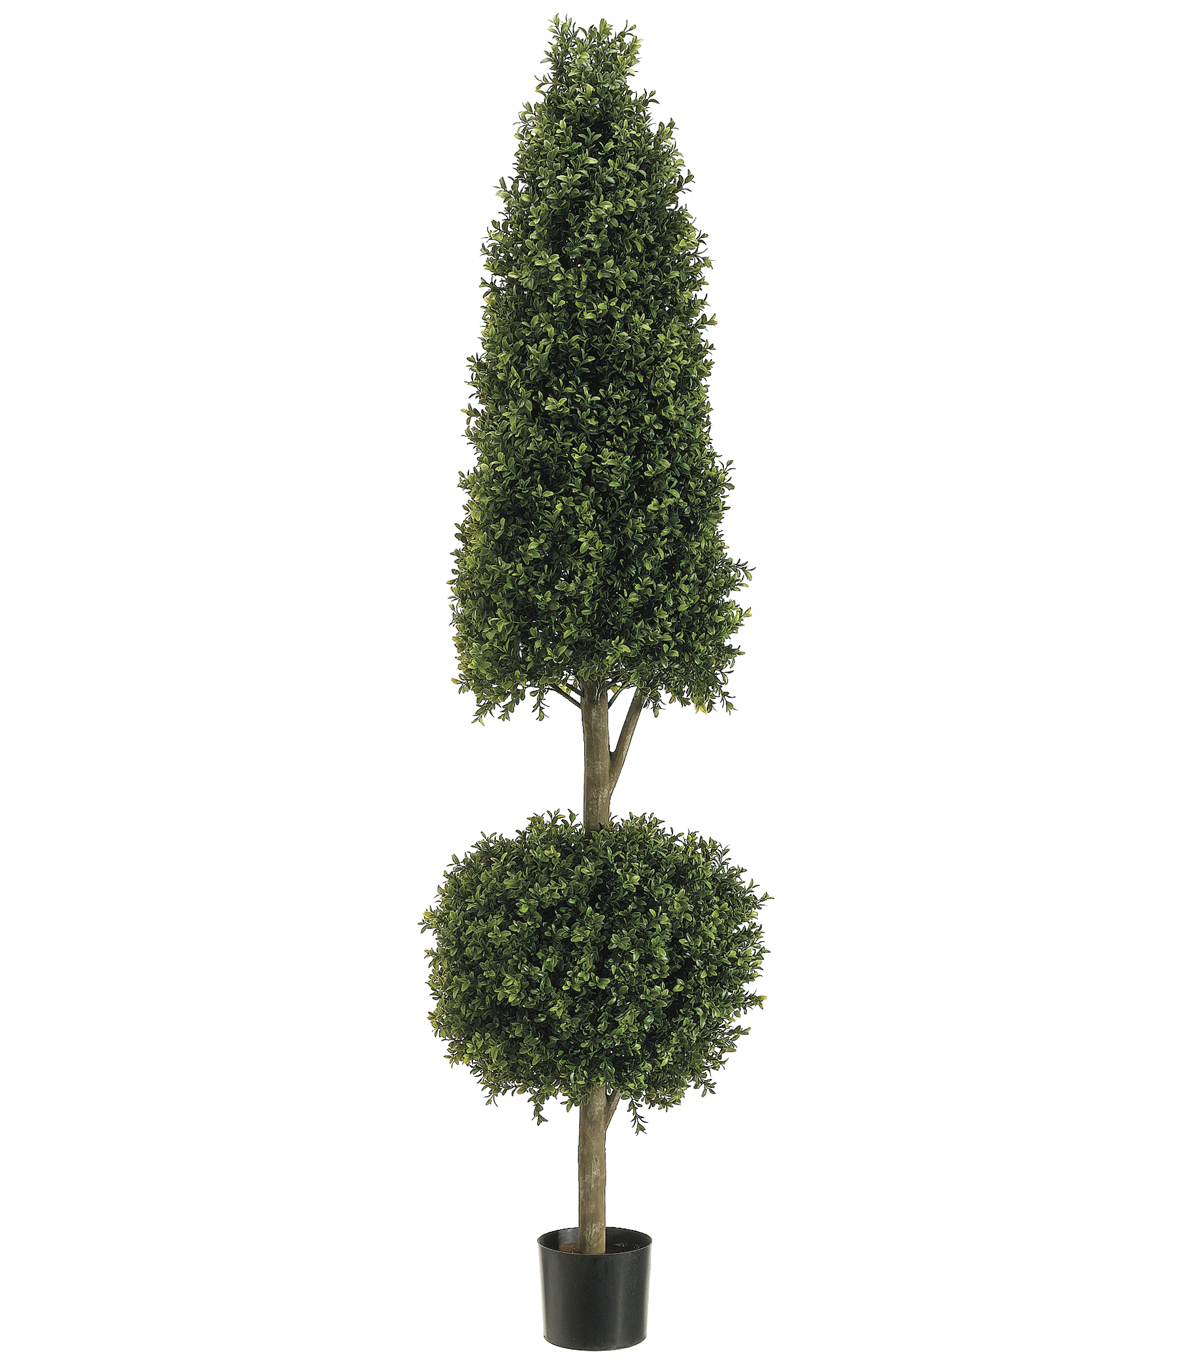 Cone & Ball Shaped Boxwood Topiary in Plastic Pot 6\u0027